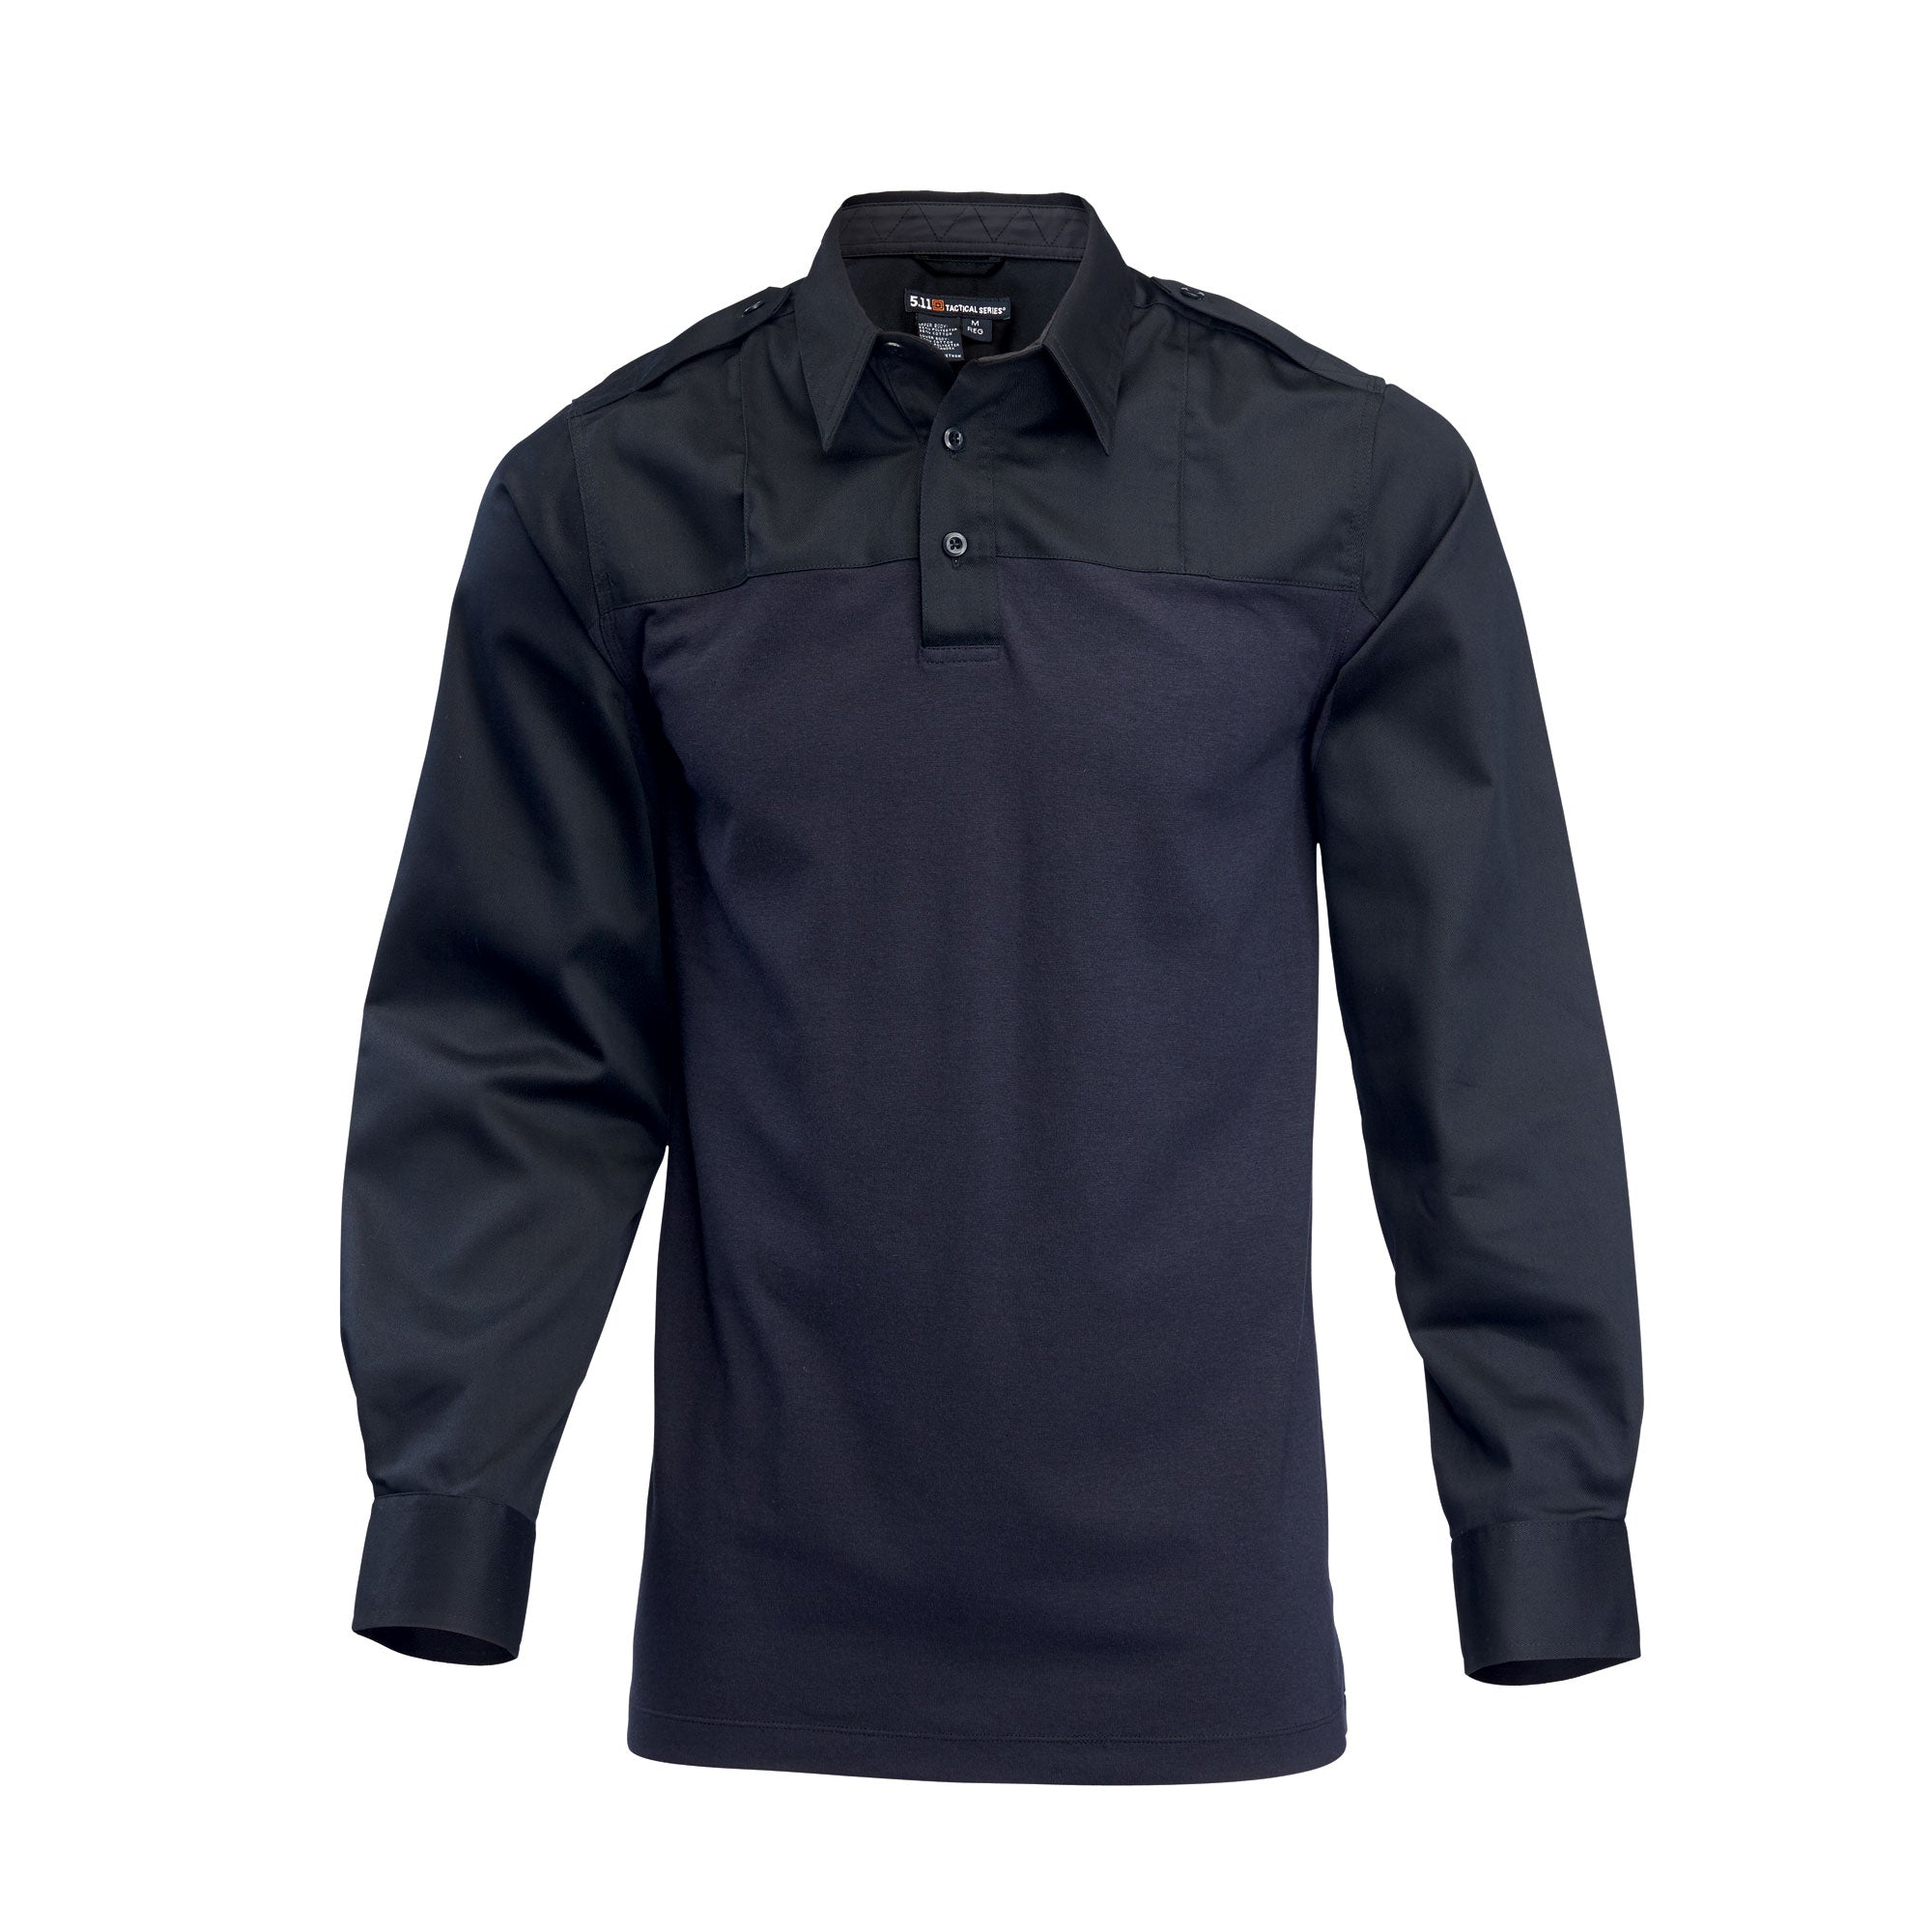 72197 RAPID PDU® LONG SLEEVE SHIRT